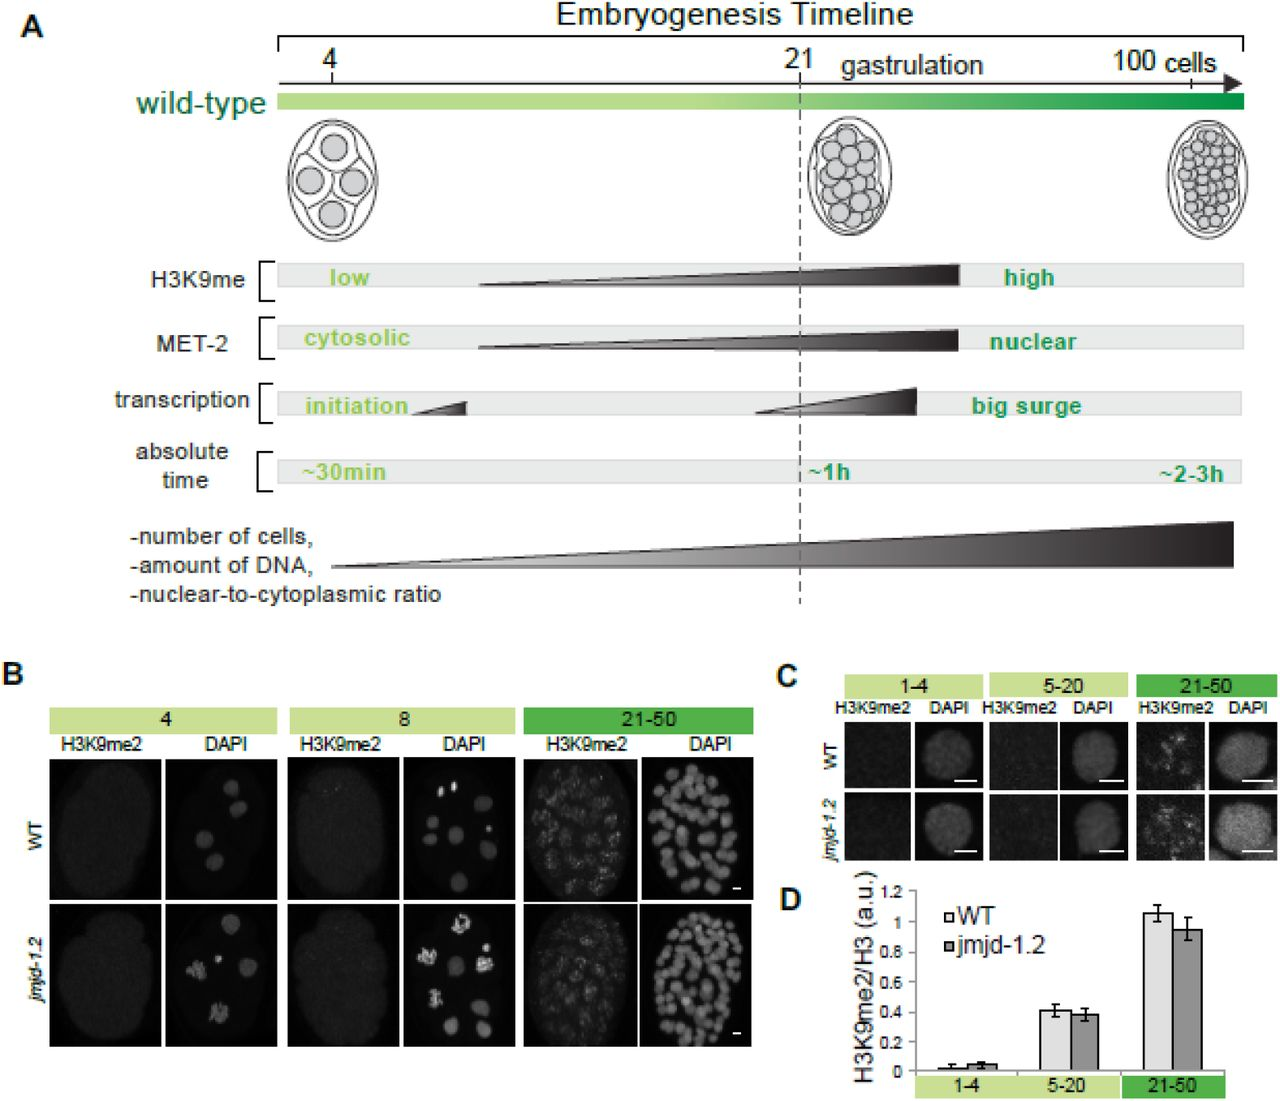 MET-2, a SETDB1 family methyltransferase, coordinates embryo events